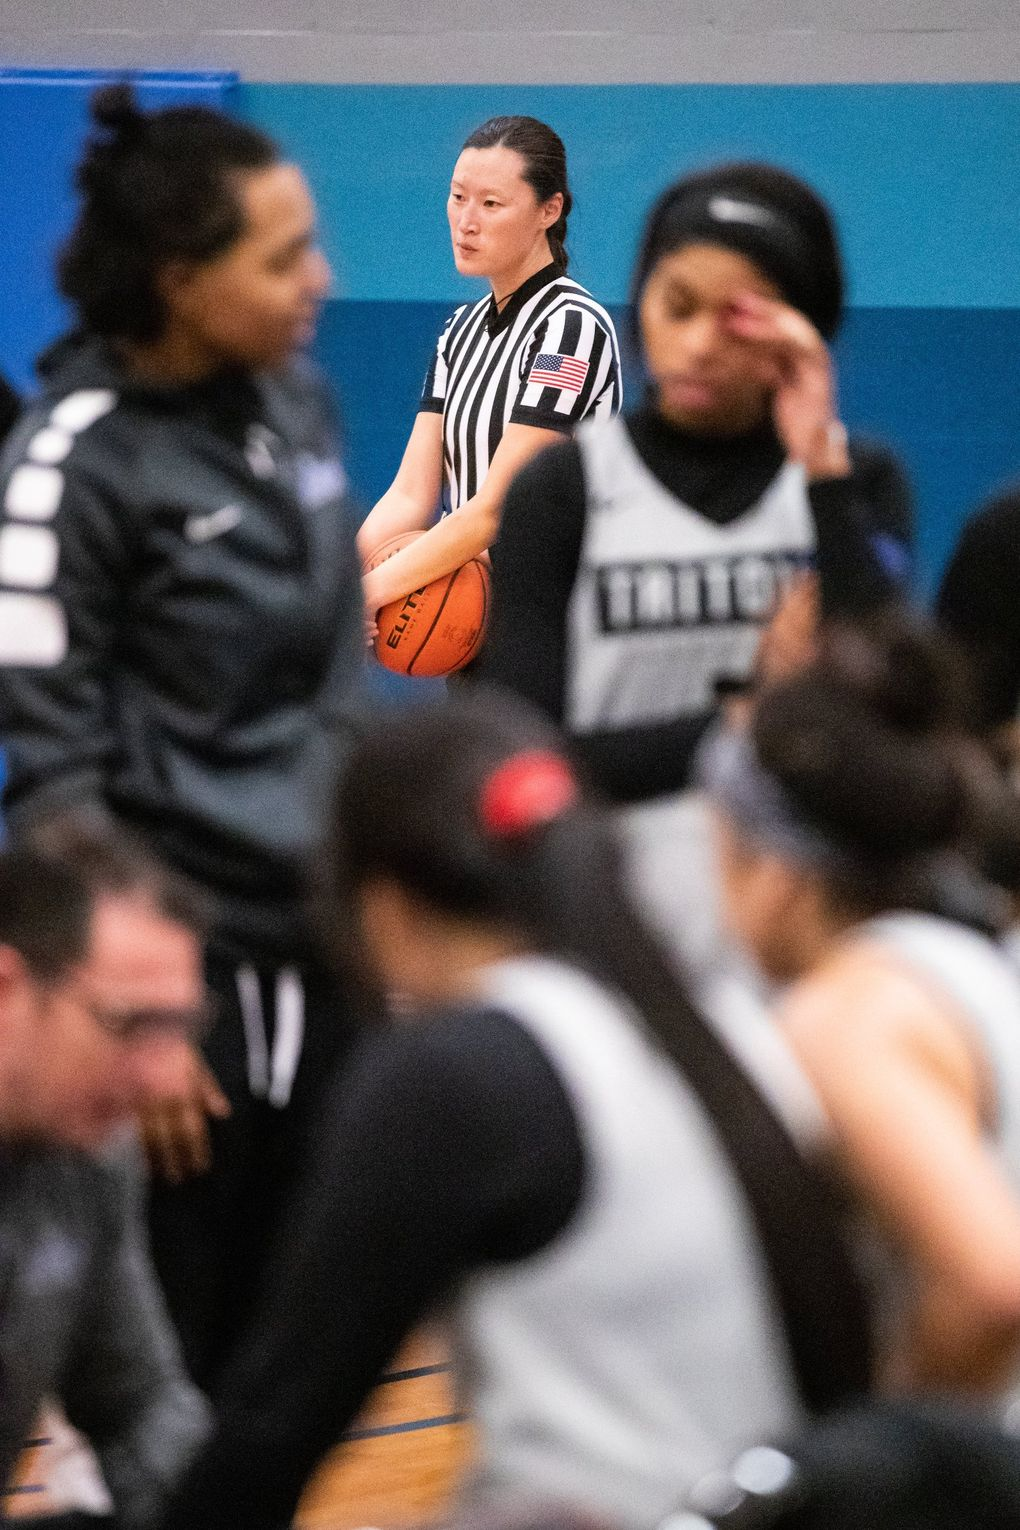 """Referee Jillian Quinn waits during a timeout in a women's basketball scrimmage. The pool of referees is shrinking while organizations struggle to bring aboard new officials. """"There's just more open games than officials,"""" Quinn said. """"If you were a kid and you could make $20 an hour reffing a basketball game but were getting verbally abused, why would you want to do that?""""  (Andy Bao / The Seattle Times)"""